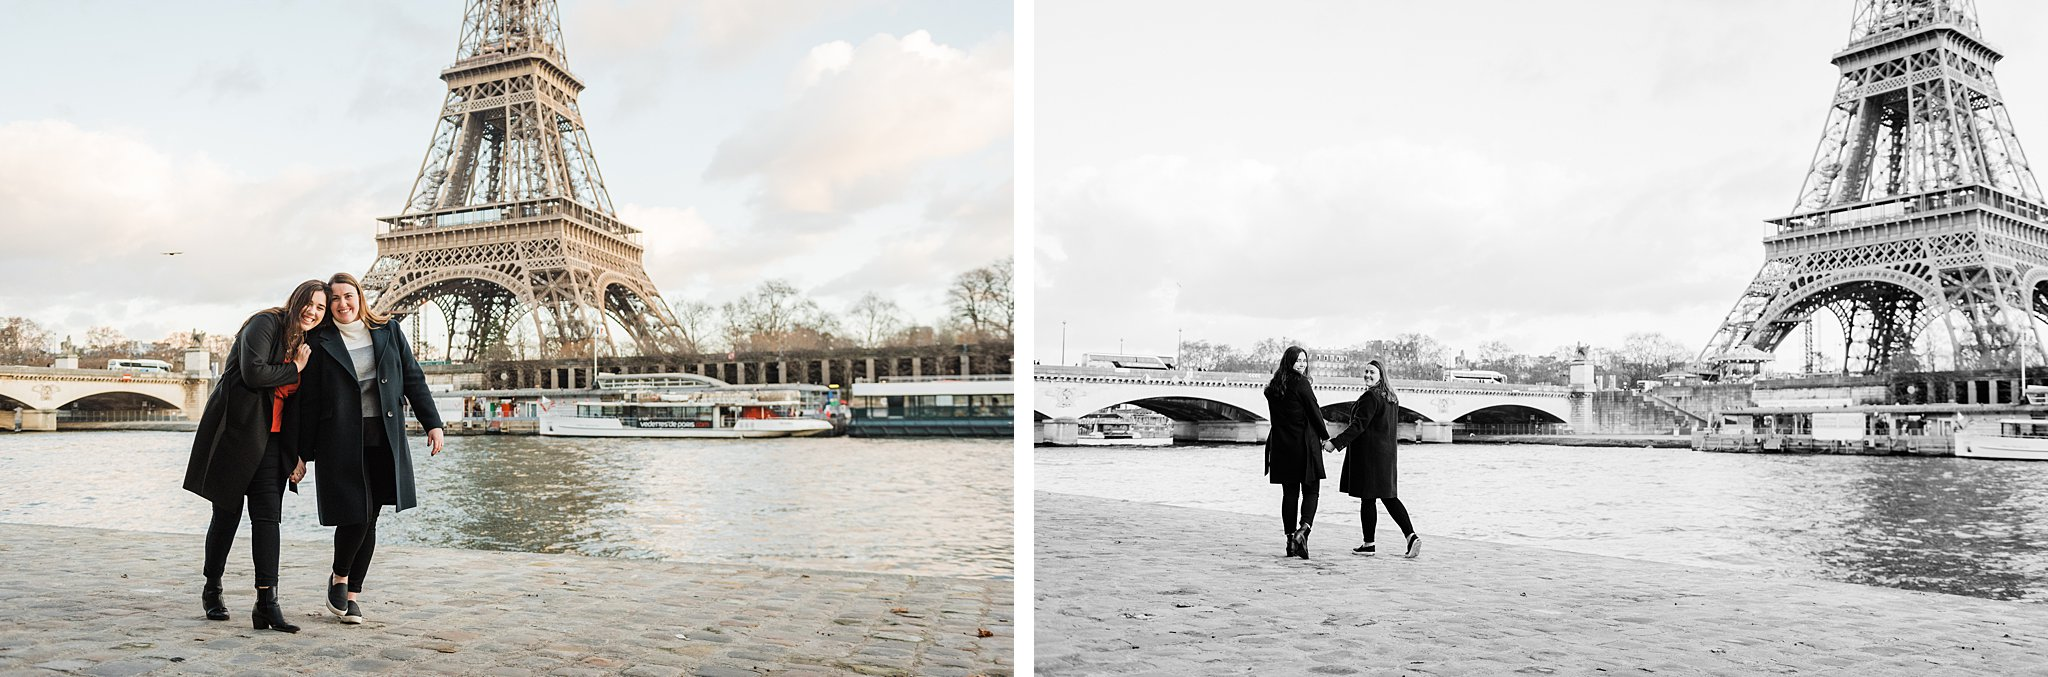 Side by side images of sisters walking together by the Seine during a Paris photo shoot, as a study abroad activity and Christmas gift